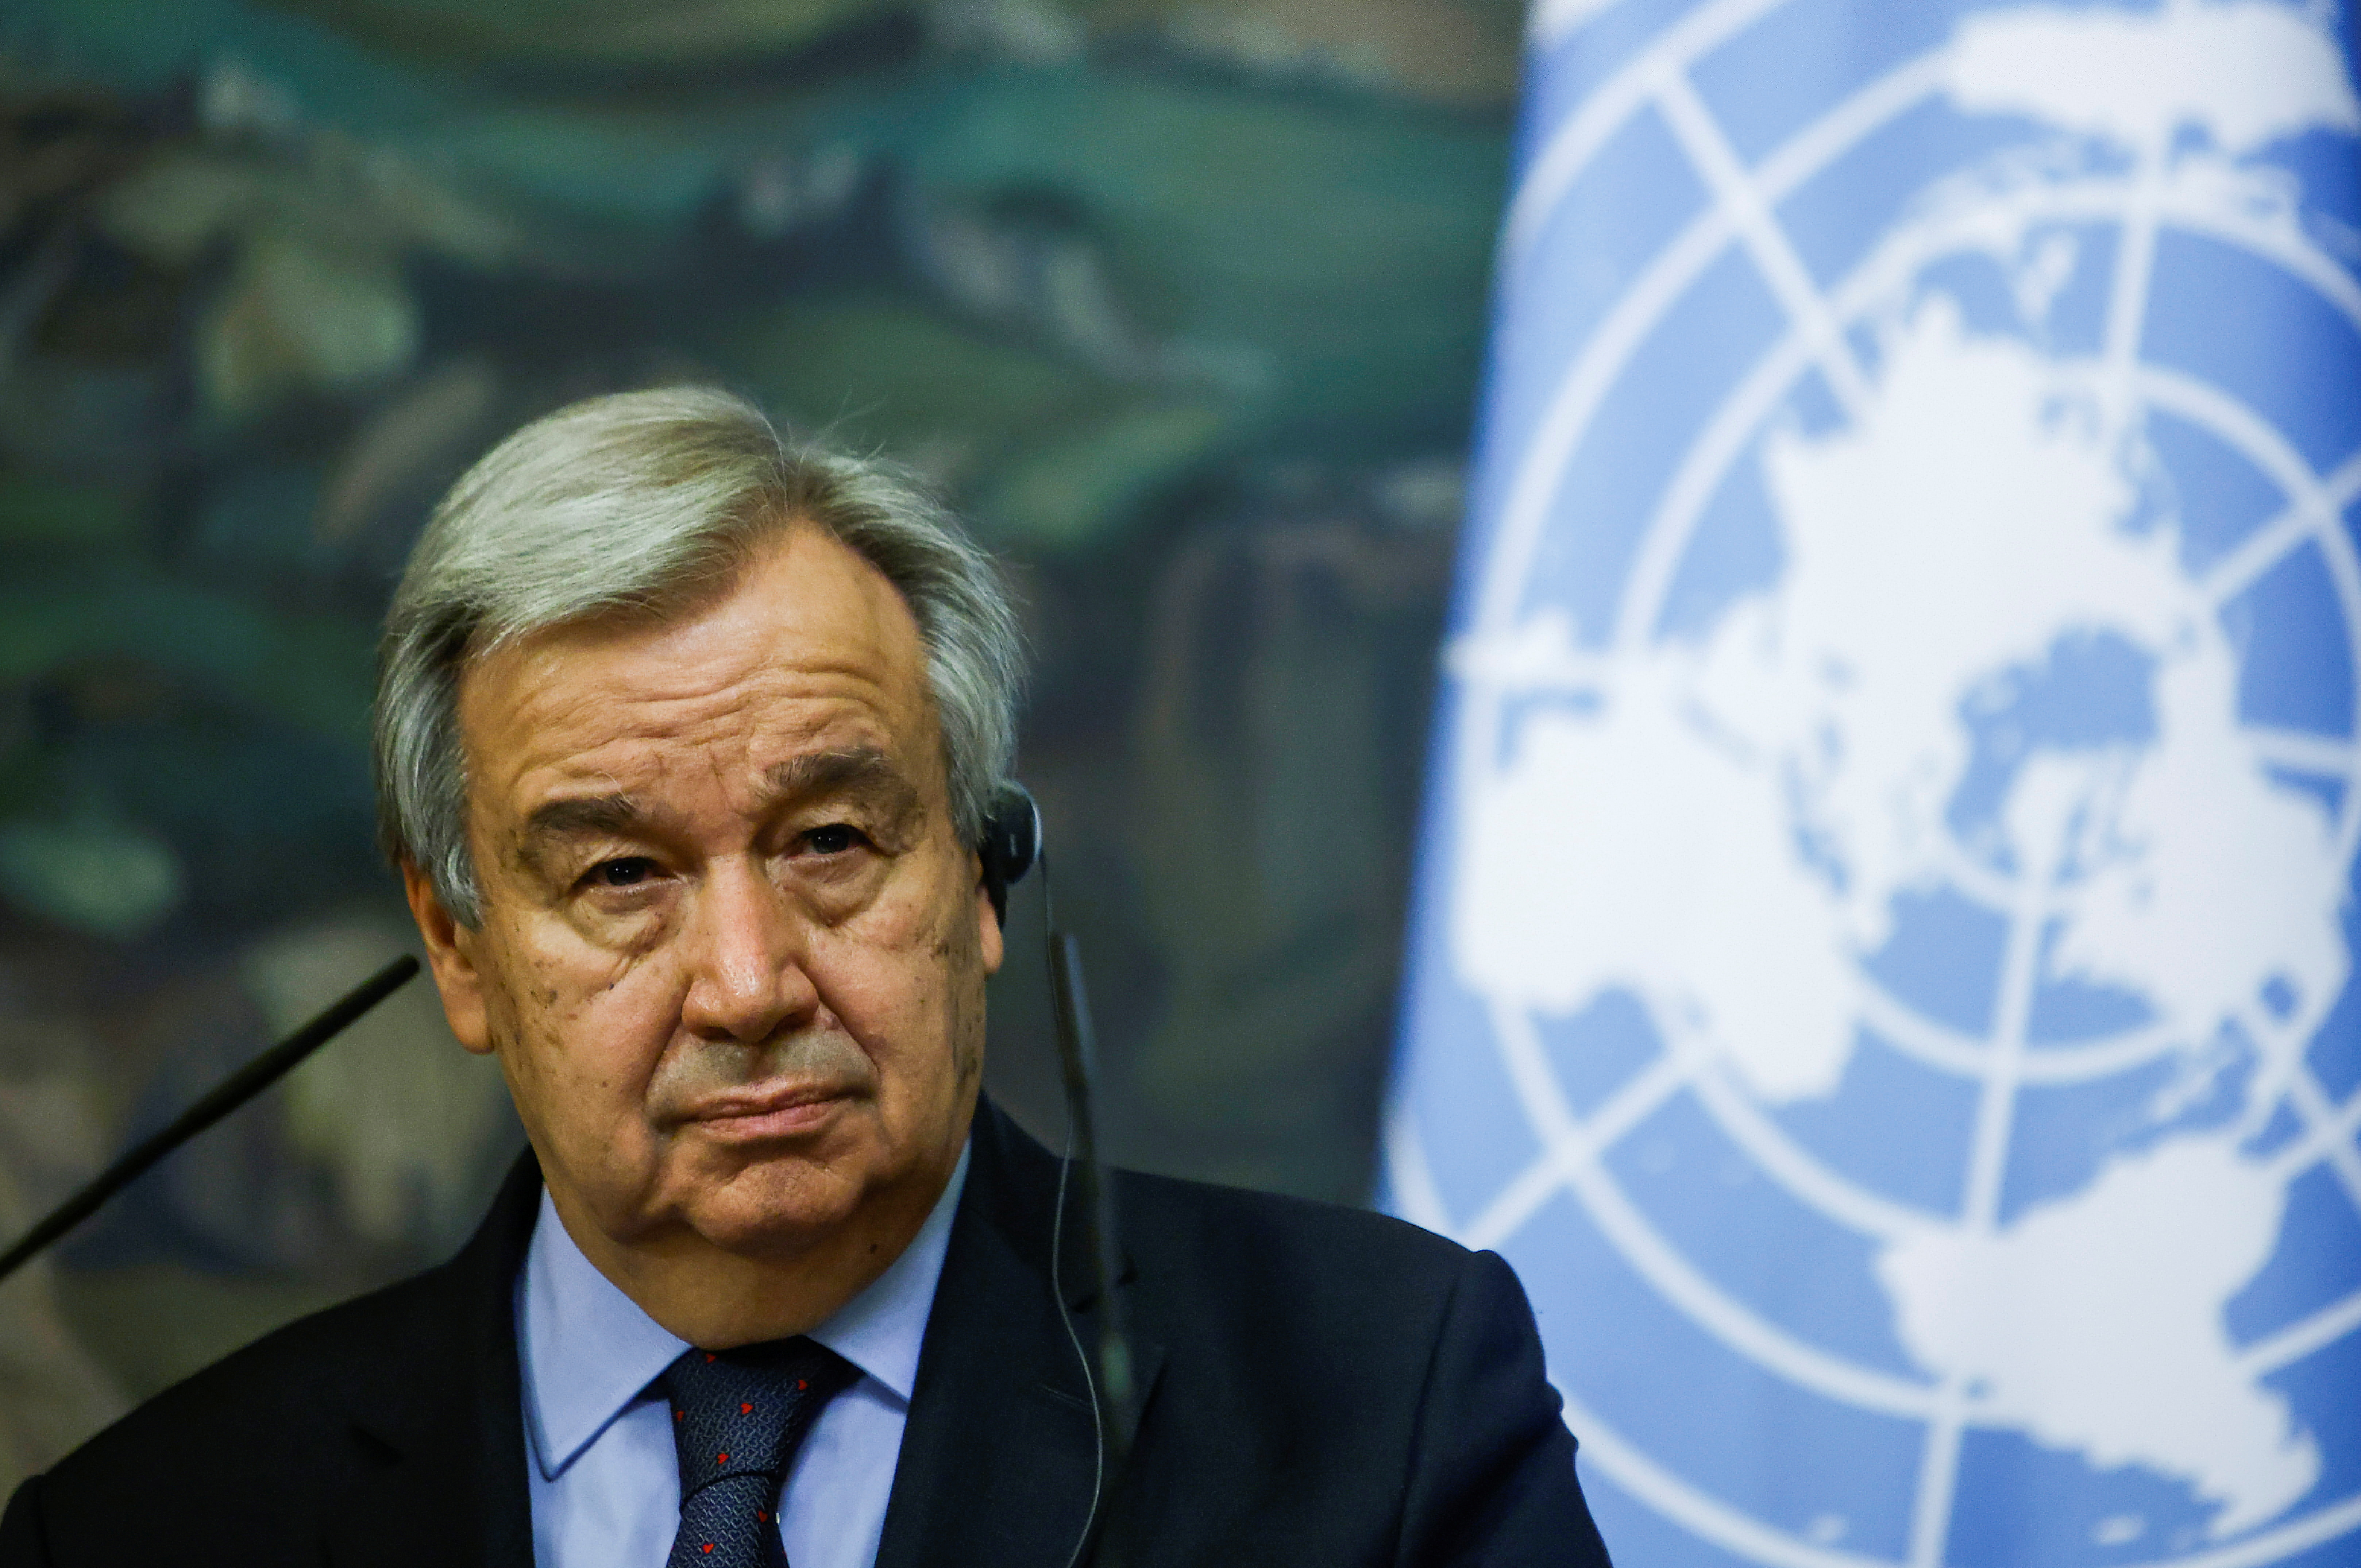 U.N. Secretary-General Antonio Guterres attends a news conference following talks with Russian Foreign Minister Sergei Lavrov in Moscow, Russia May 12, 2021. REUTERS/Maxim Shemetov